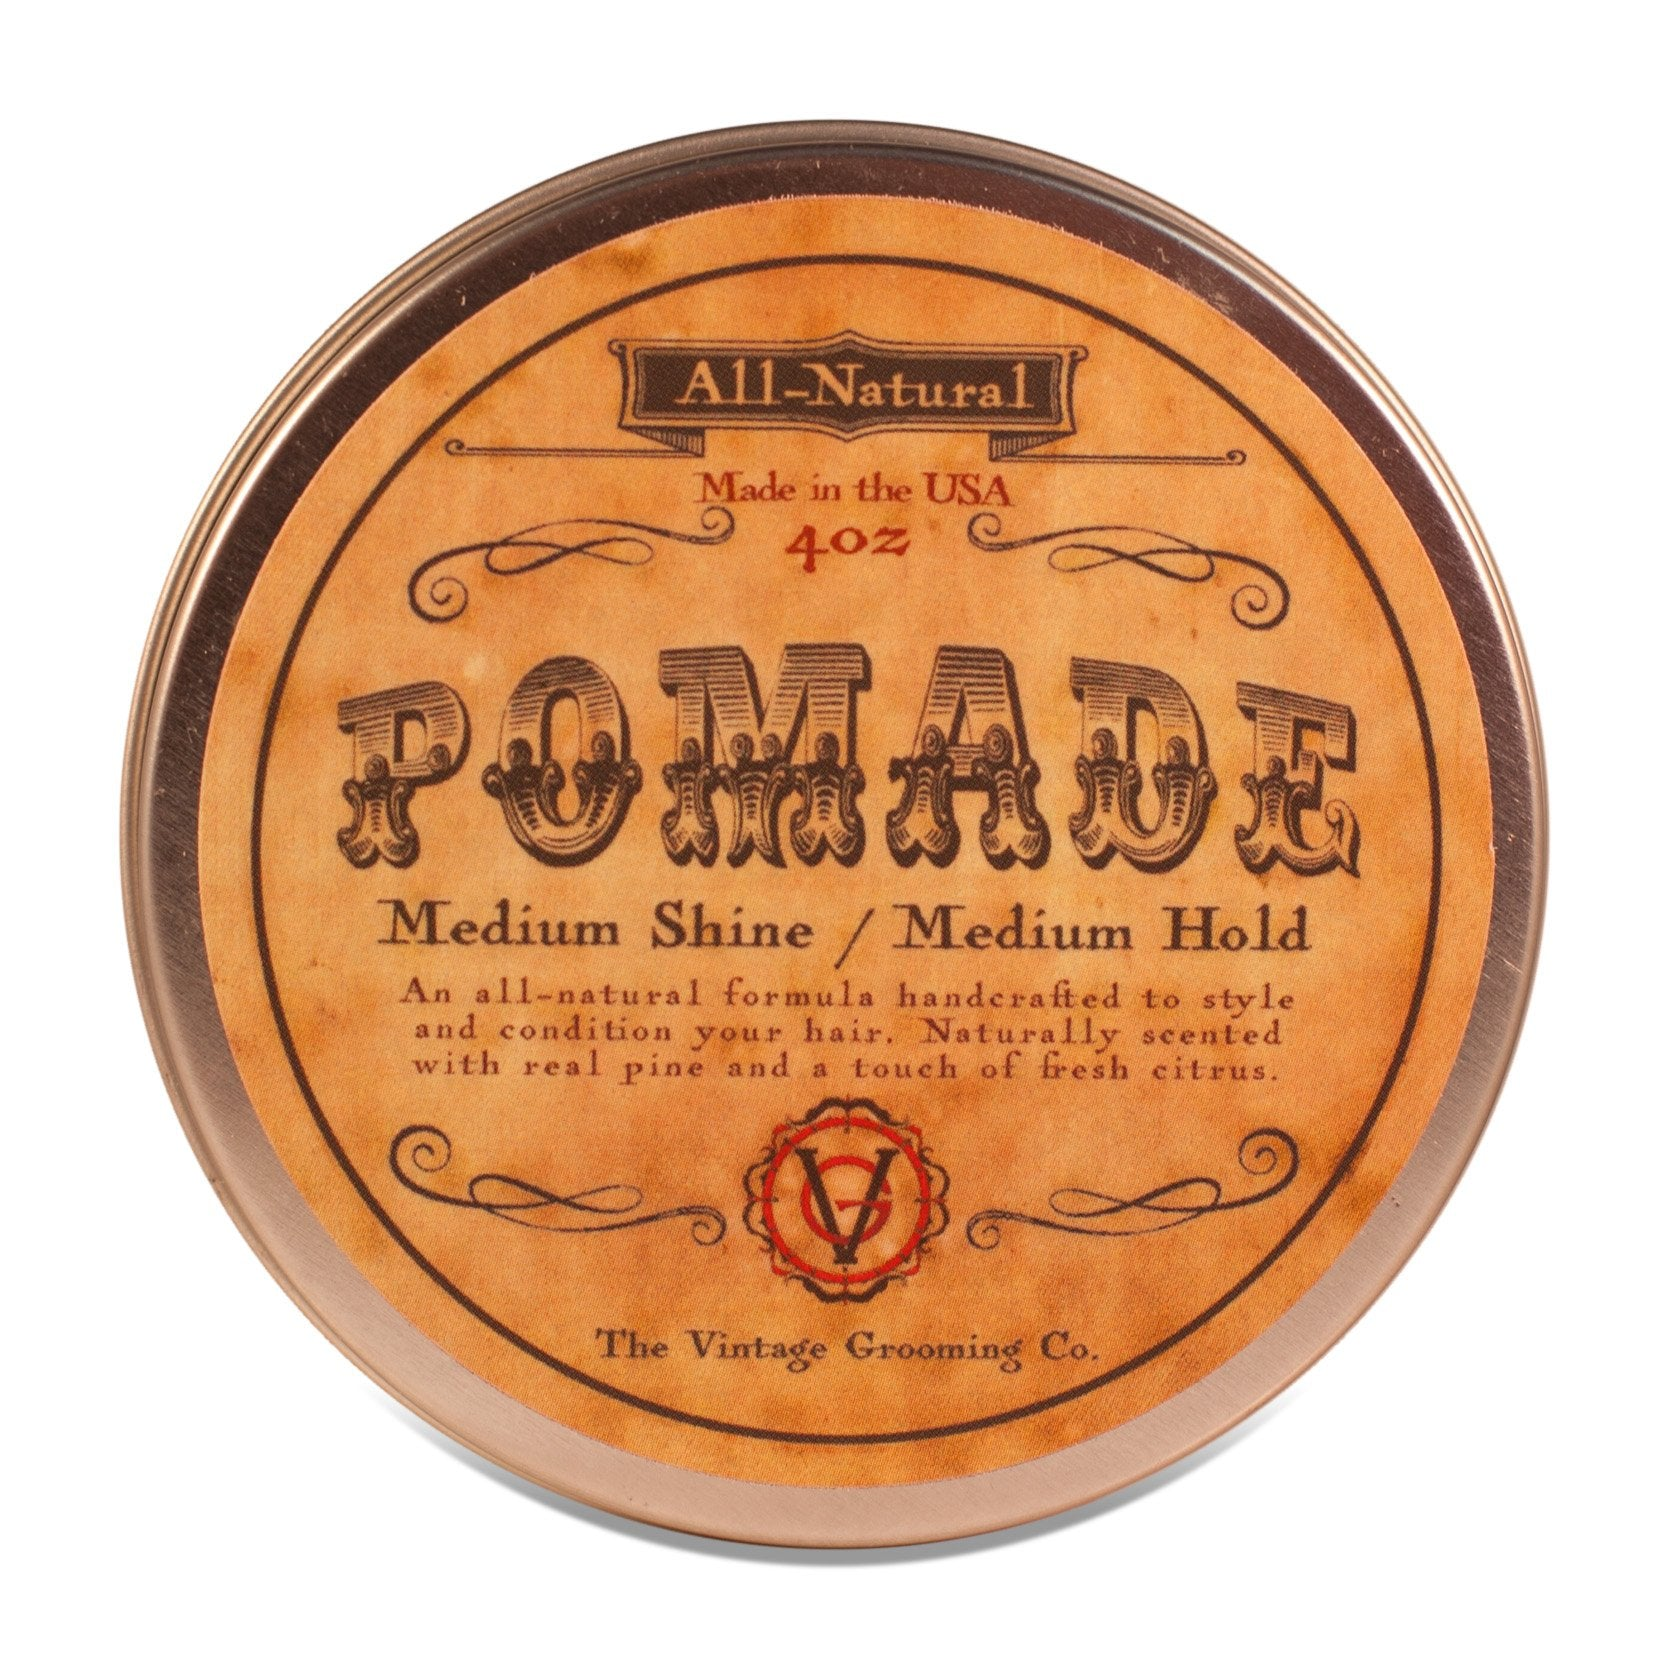 Vintage Hair Pomade - All Natural - Medium Hold (4oz)